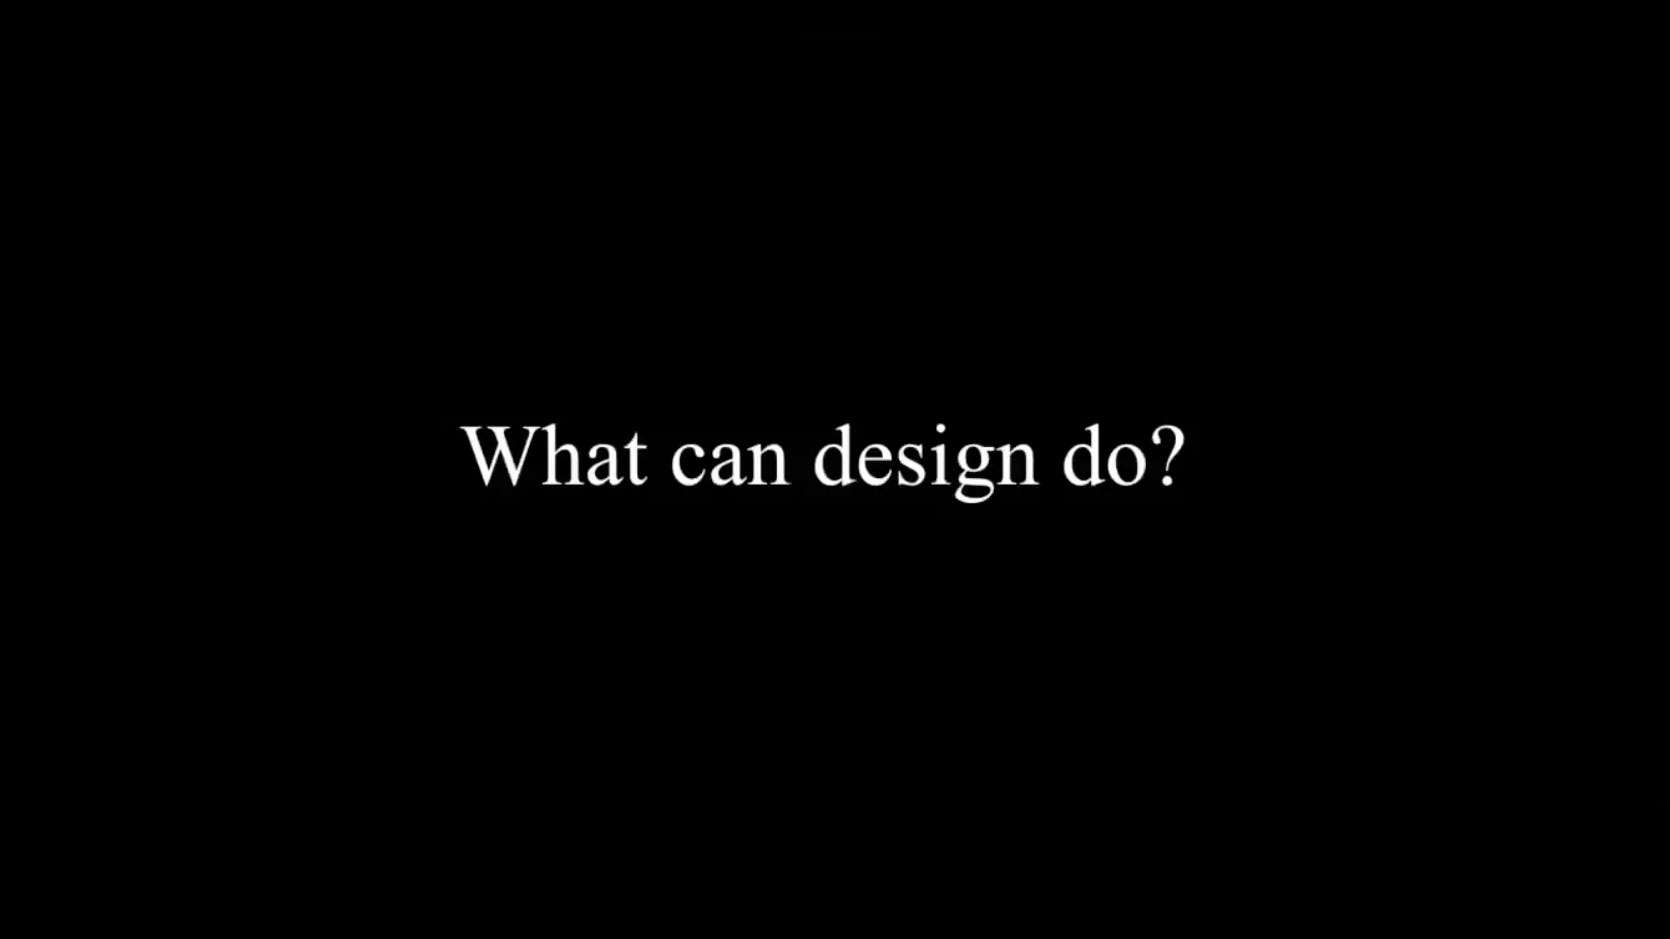 Robert Wong graphic - what can design do?